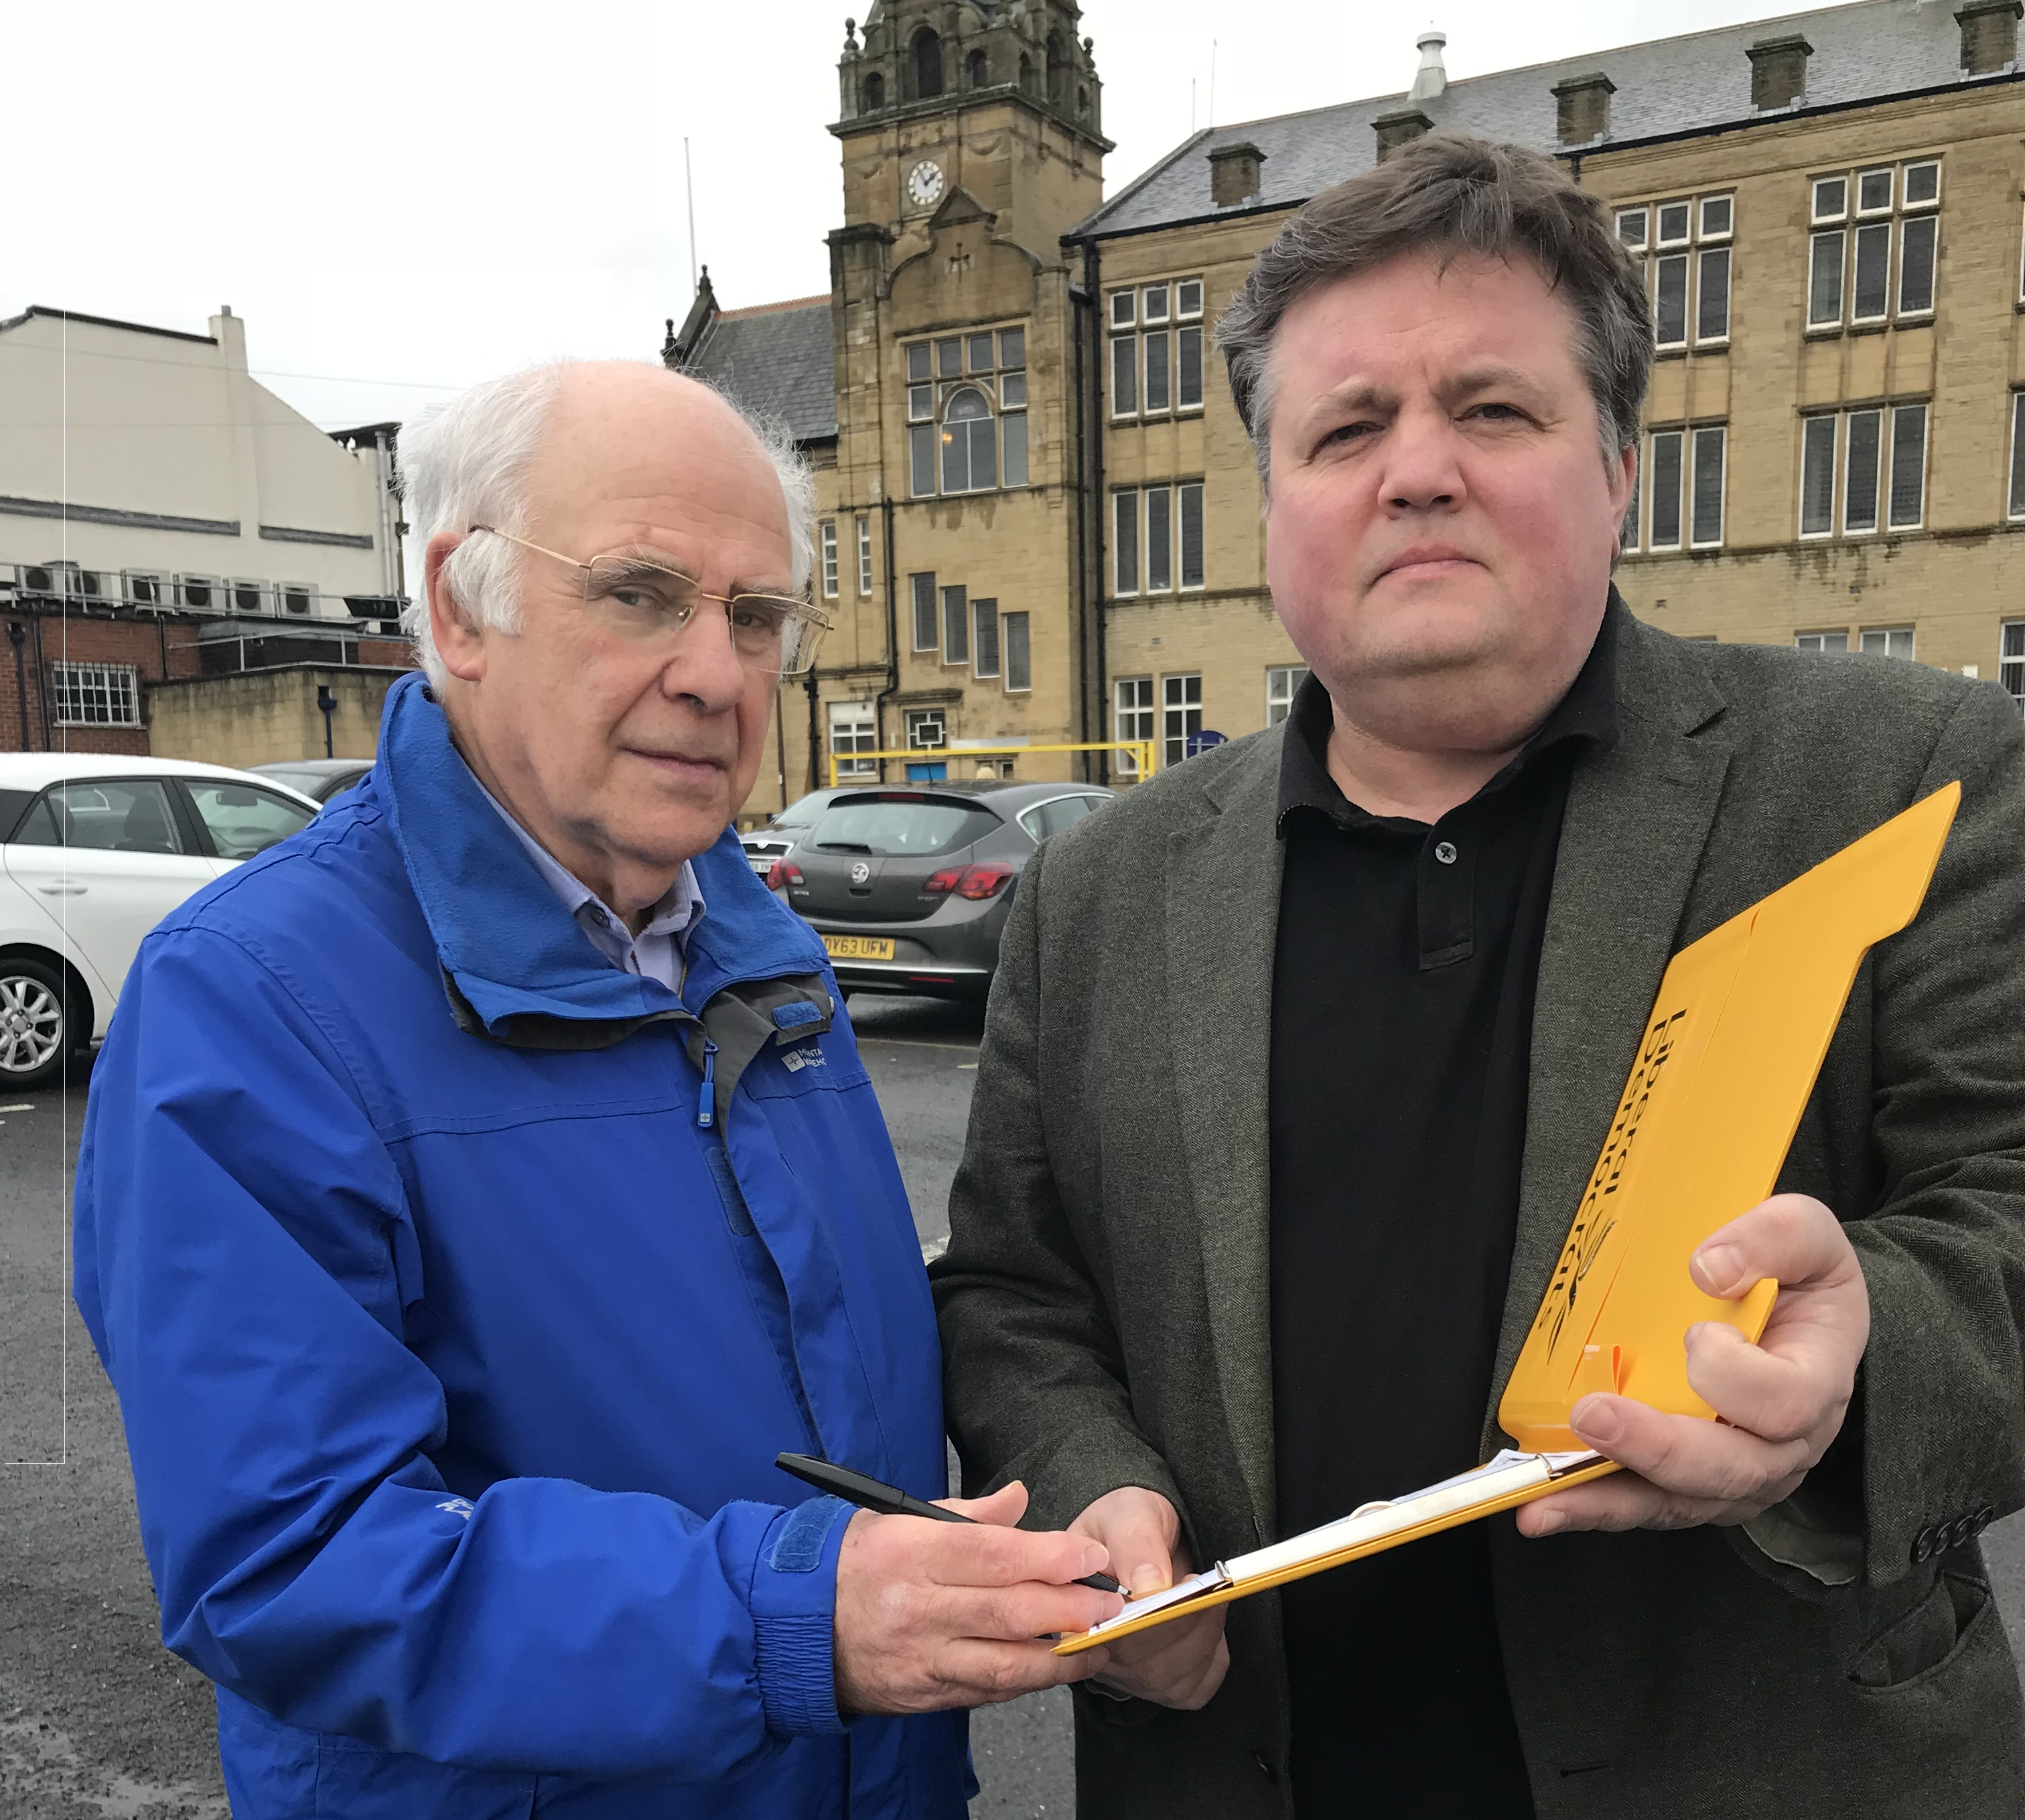 Councilor Lawson opposing car park charges in Cleckheaton